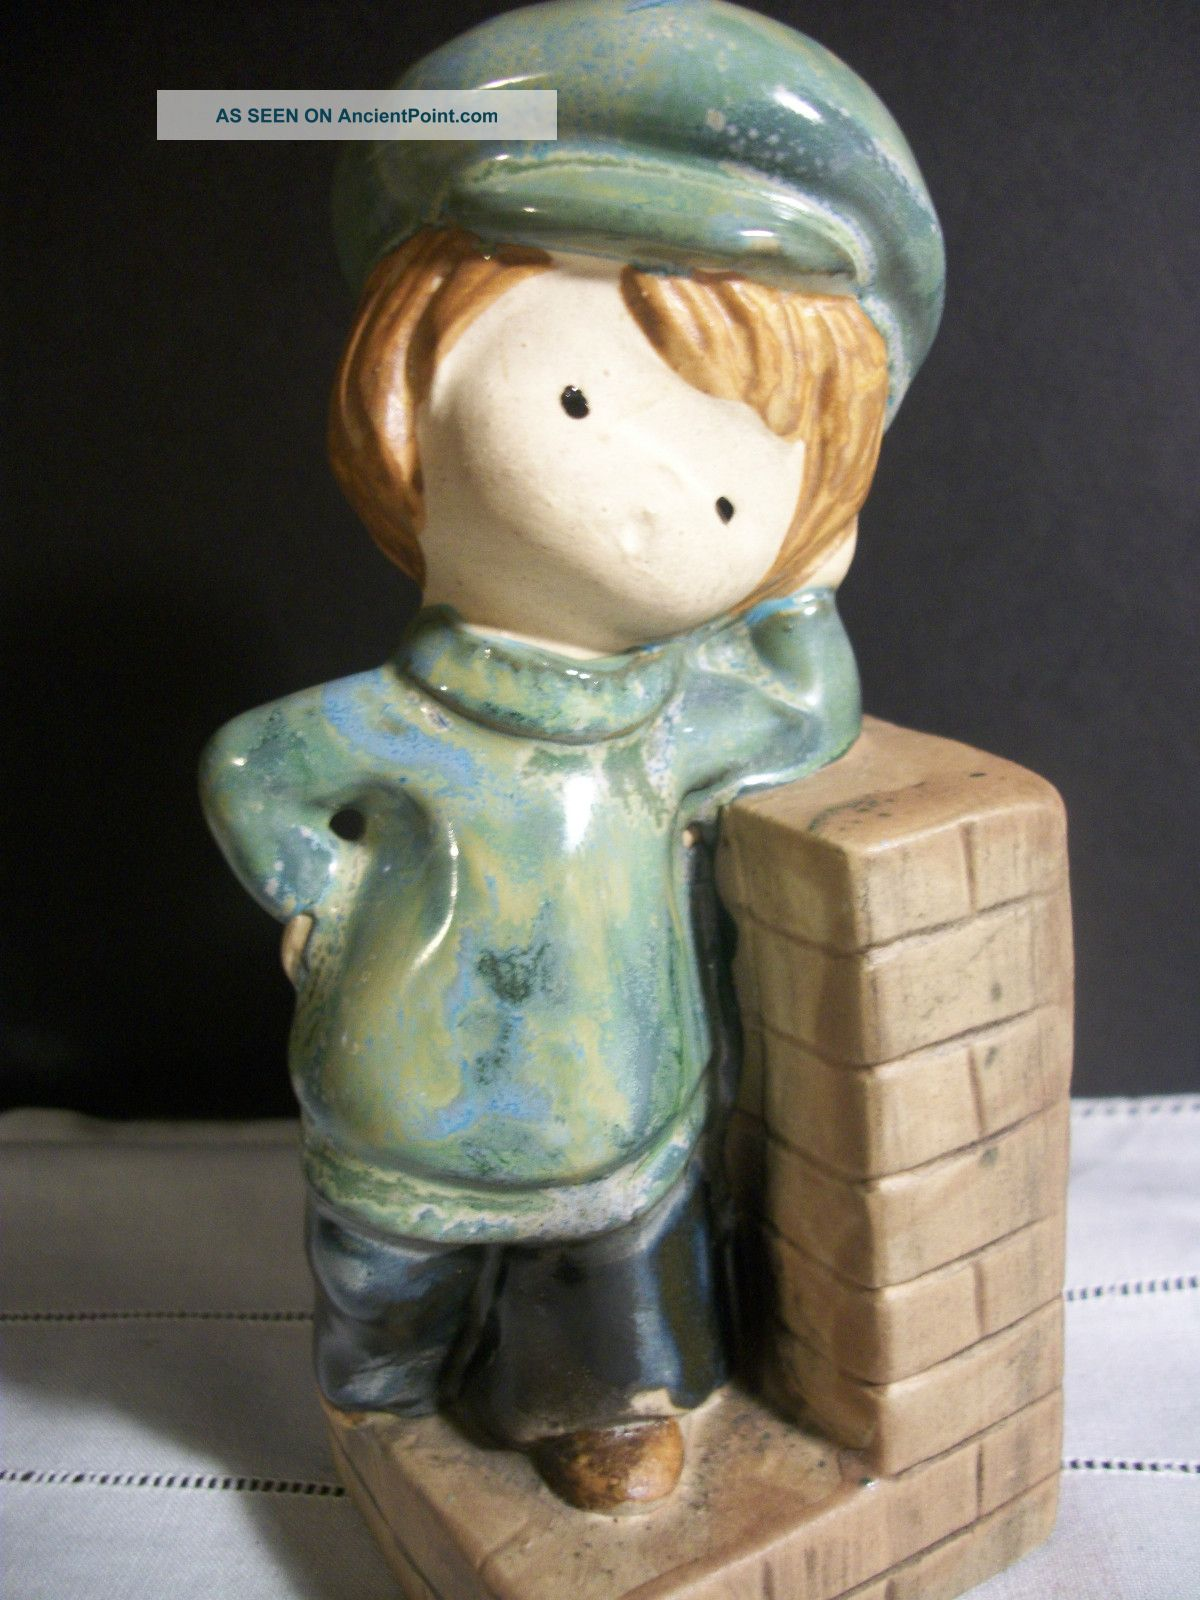 Vintage Uctci Uccti Japan Hand Painted Glaze Ceramic Pottery Boy On Brick Wall Figurines photo